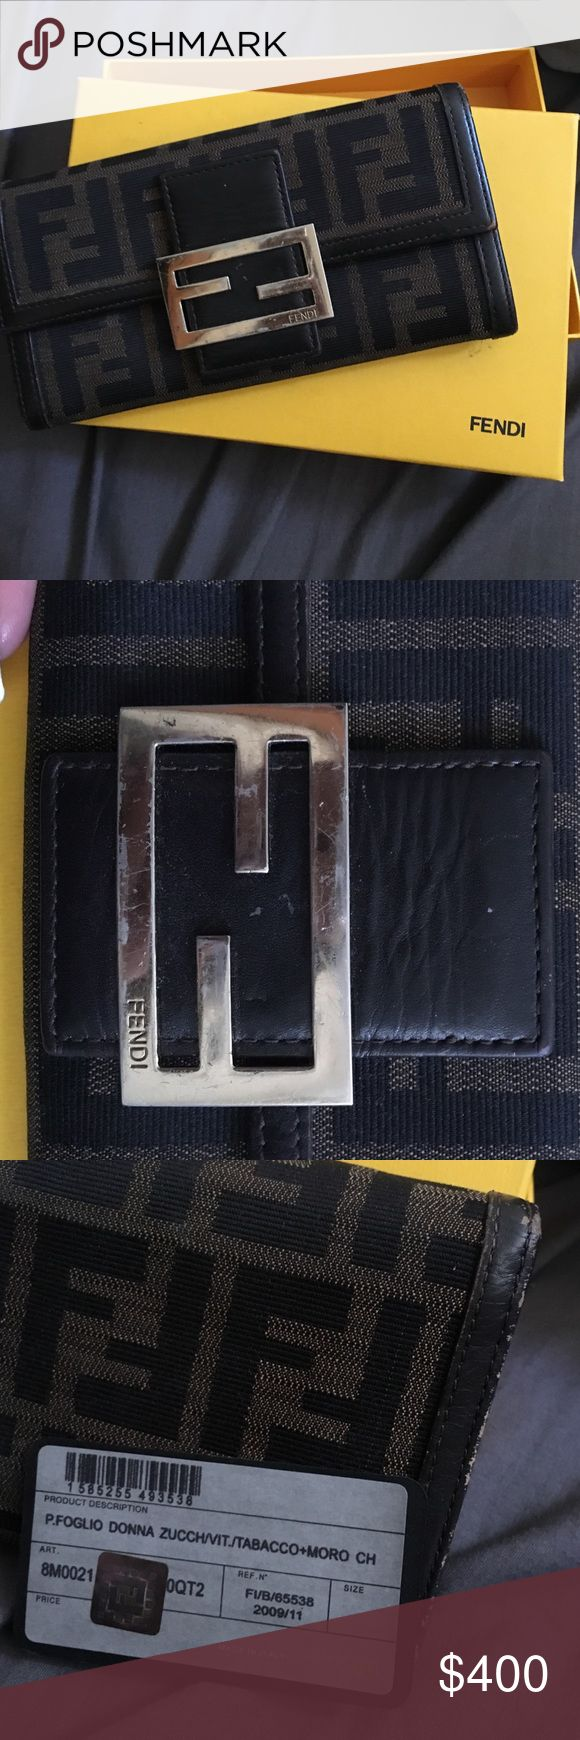 FENDI FULL SIZE Wallet Style name: P.FOGLIO DONNA ZUCCH. Scratches on the metal detail, corner/leather trim wear, has lots of space! 4 card slots that can hold about 2-3 cards each. No damage to the FF fabric. Comes with box, wallet, authenticity card, and dustbag. Got it as a gift a few years ago and just stored in box and would love for it to go to someone who will use it! For more pics, please let me know, I can email more! $105 free ship on Ⓜ️ taking offers if you want to drop me one…